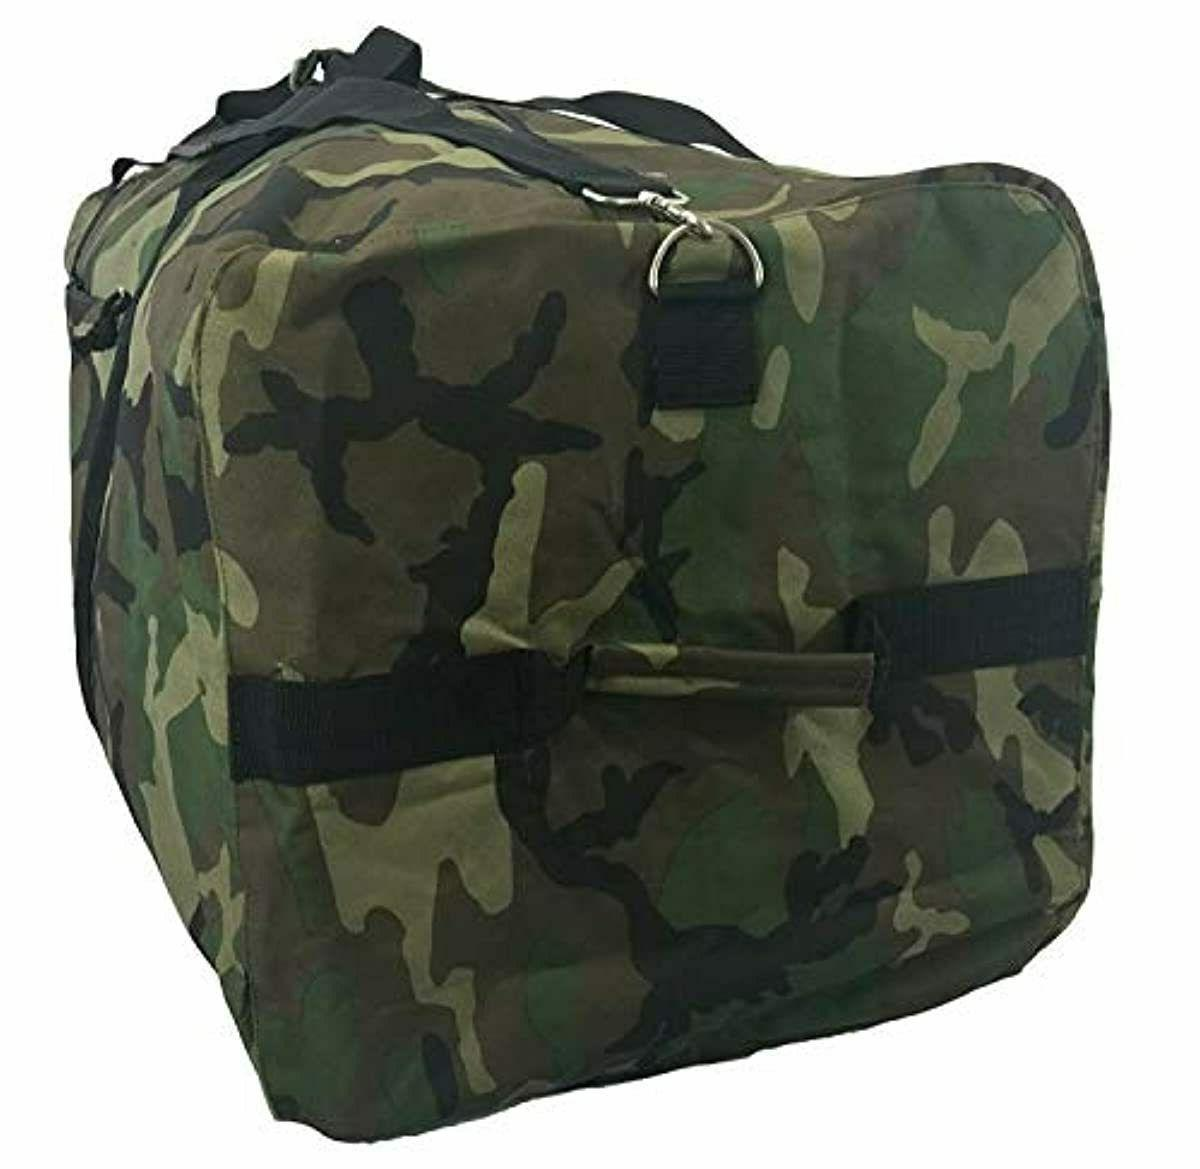 Rockland Luggage Inch Rolling Bag, X-Large